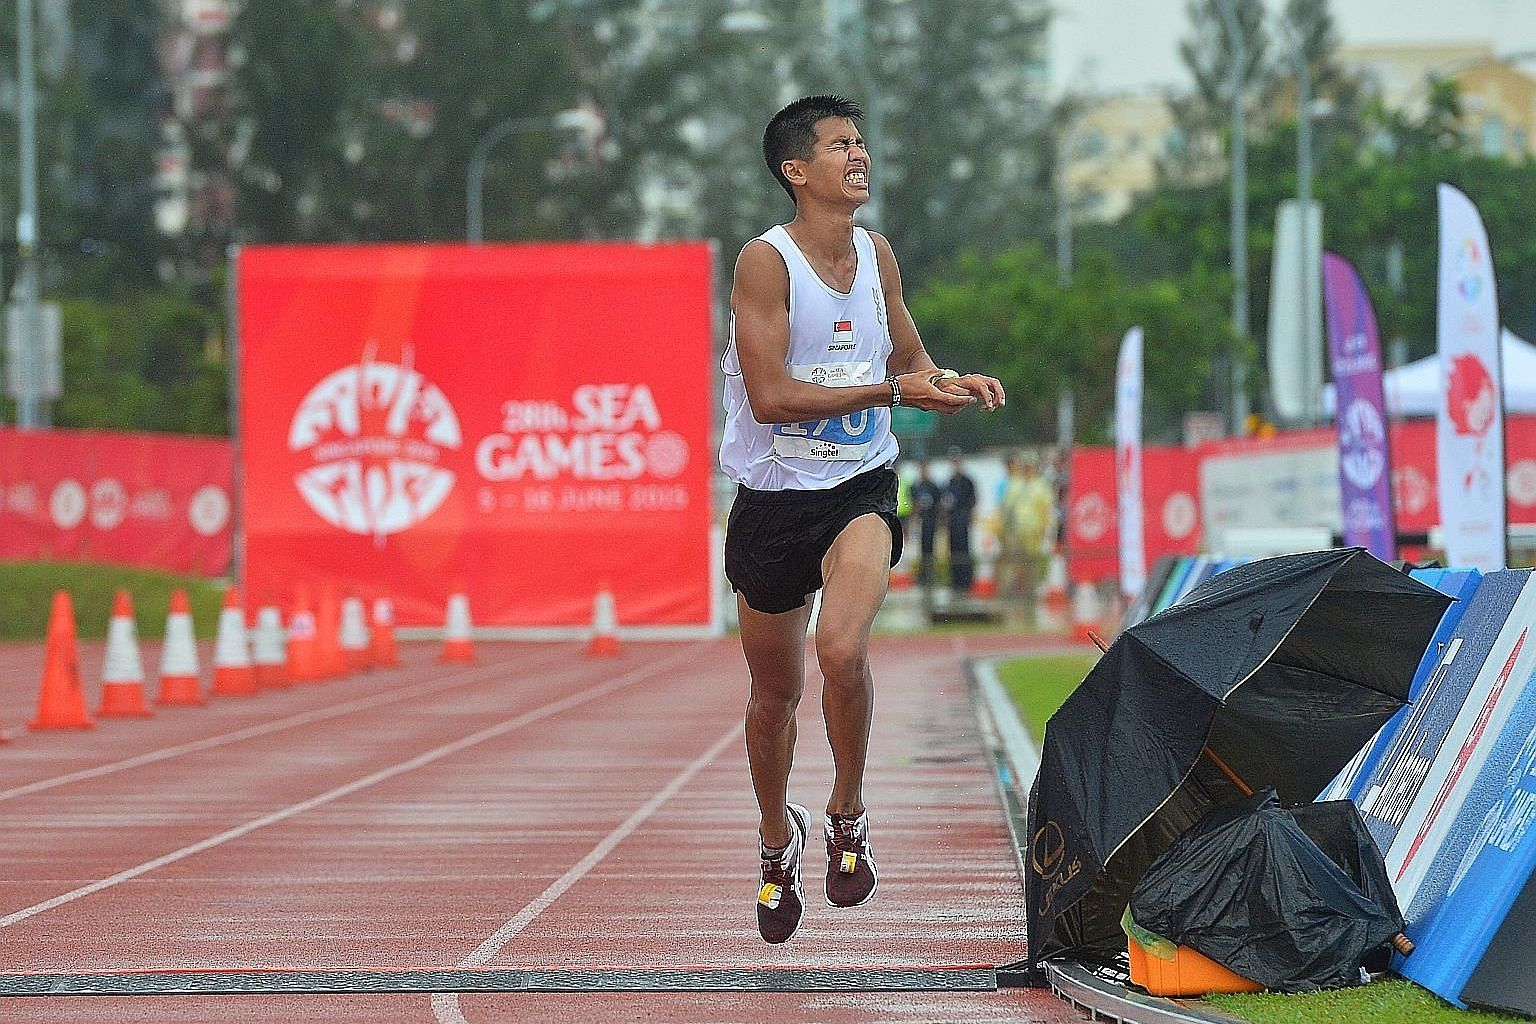 Singapore's Ashley Liew Wei Yen crosses the marathon line in eighth place at the 2015 SEA Games after his act of sportsmanship during the race.